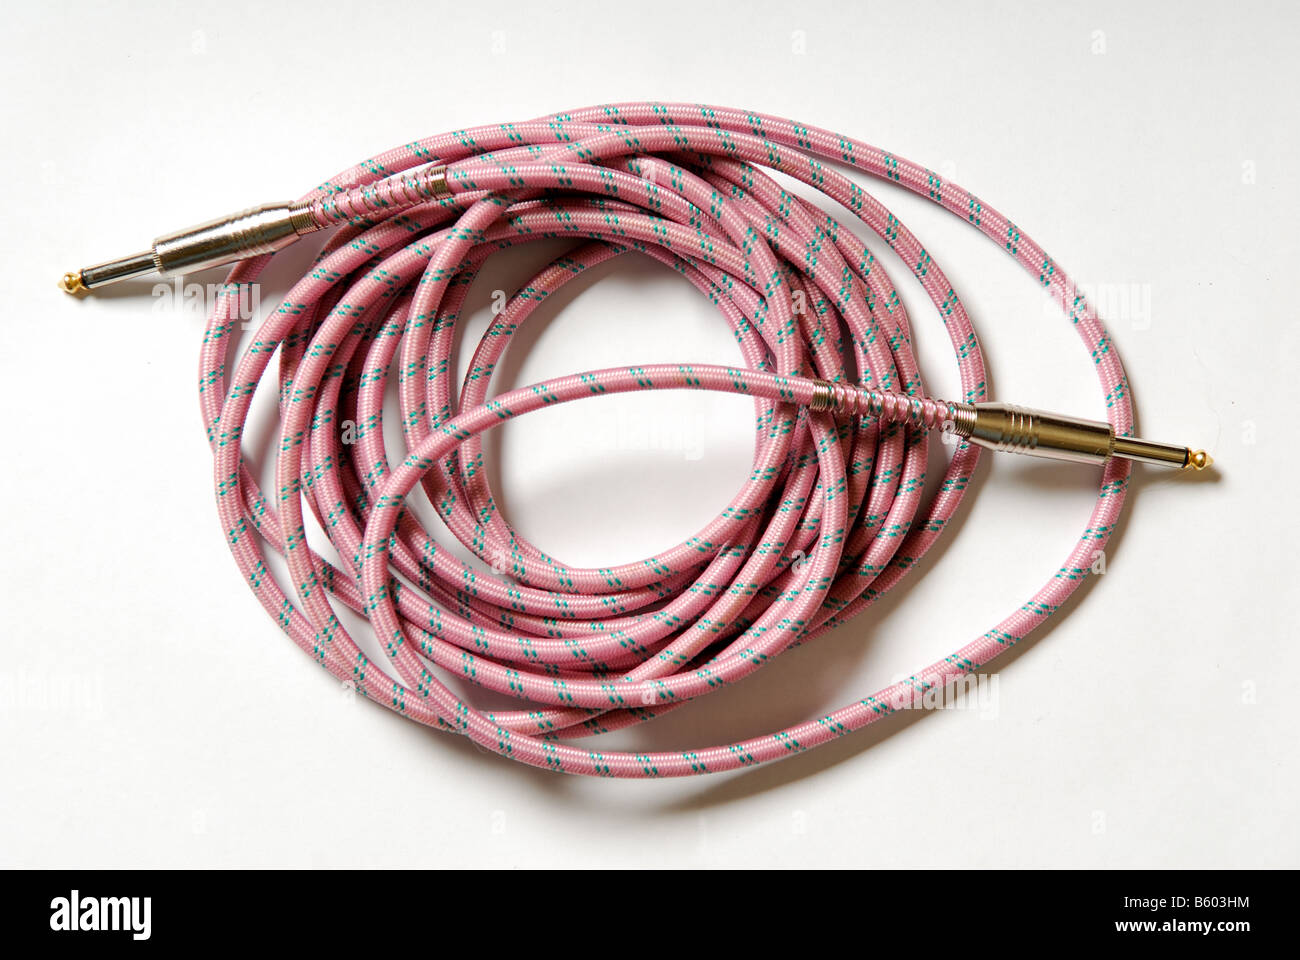 Guitar Cable Stock Photos Images Alamy Jack Wiring 1 4 Lead Image